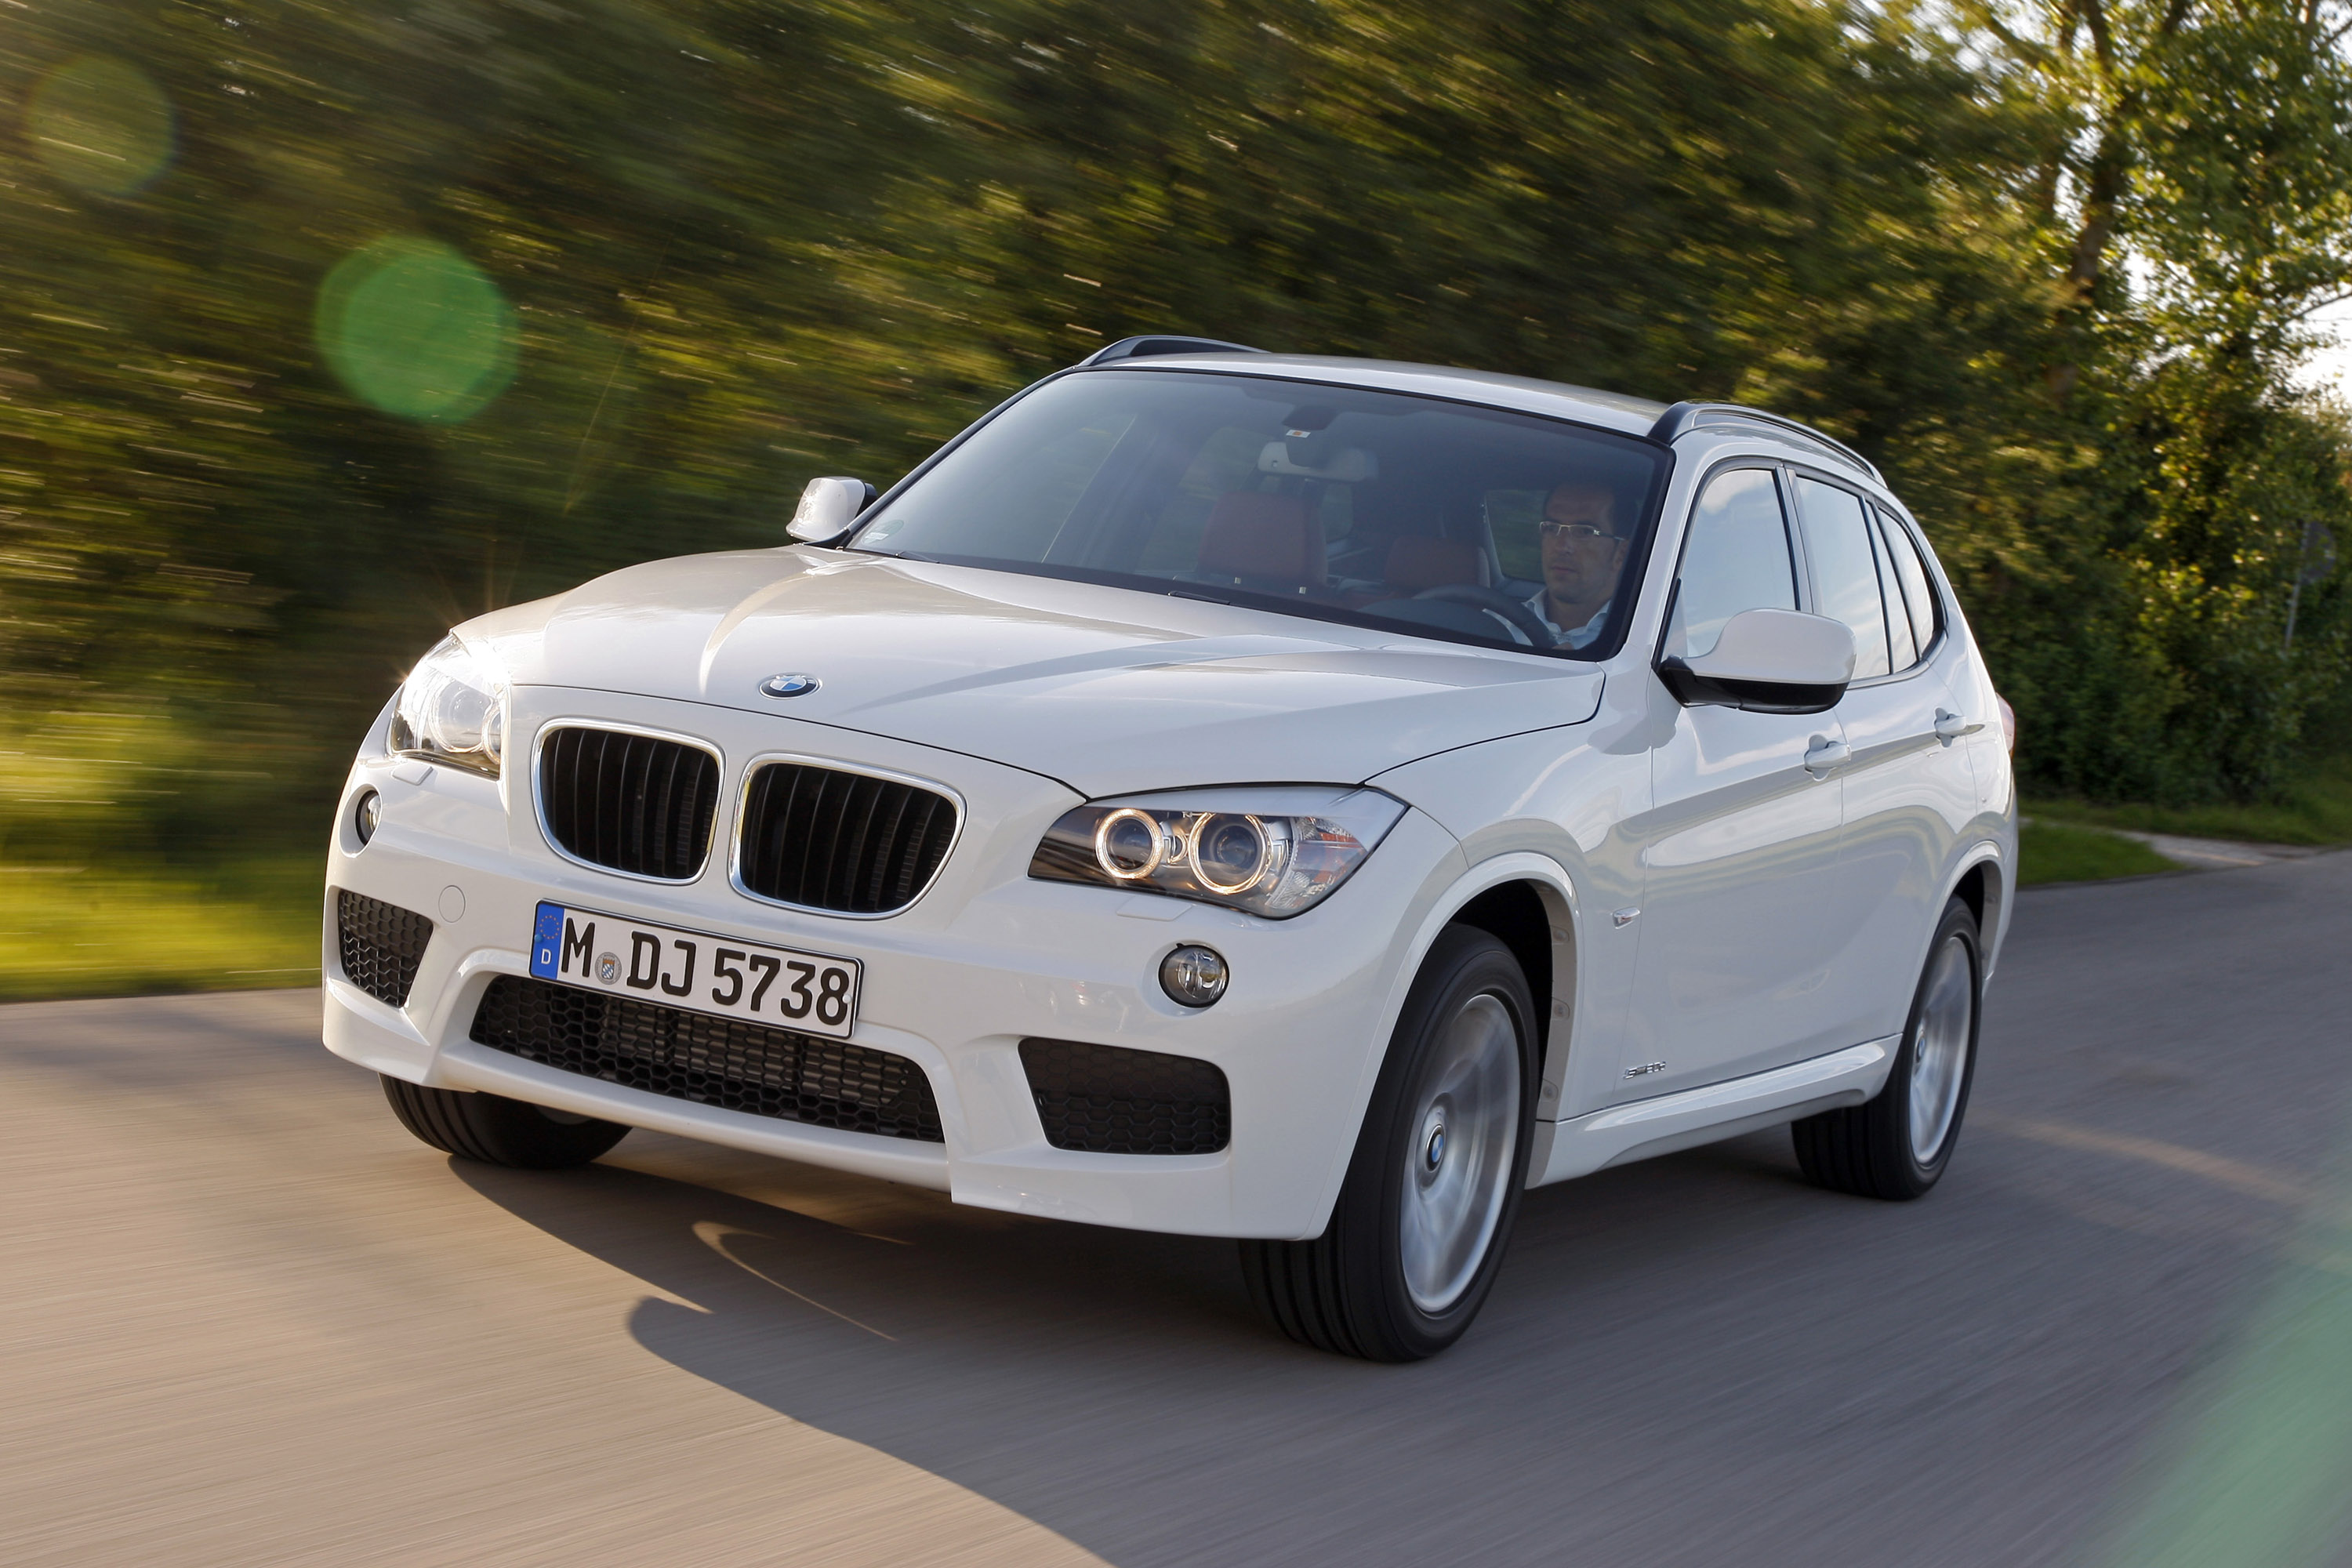 Full Force Diesel >> 2012 BMW X1 sDrive20d EfficientDynamics Edition